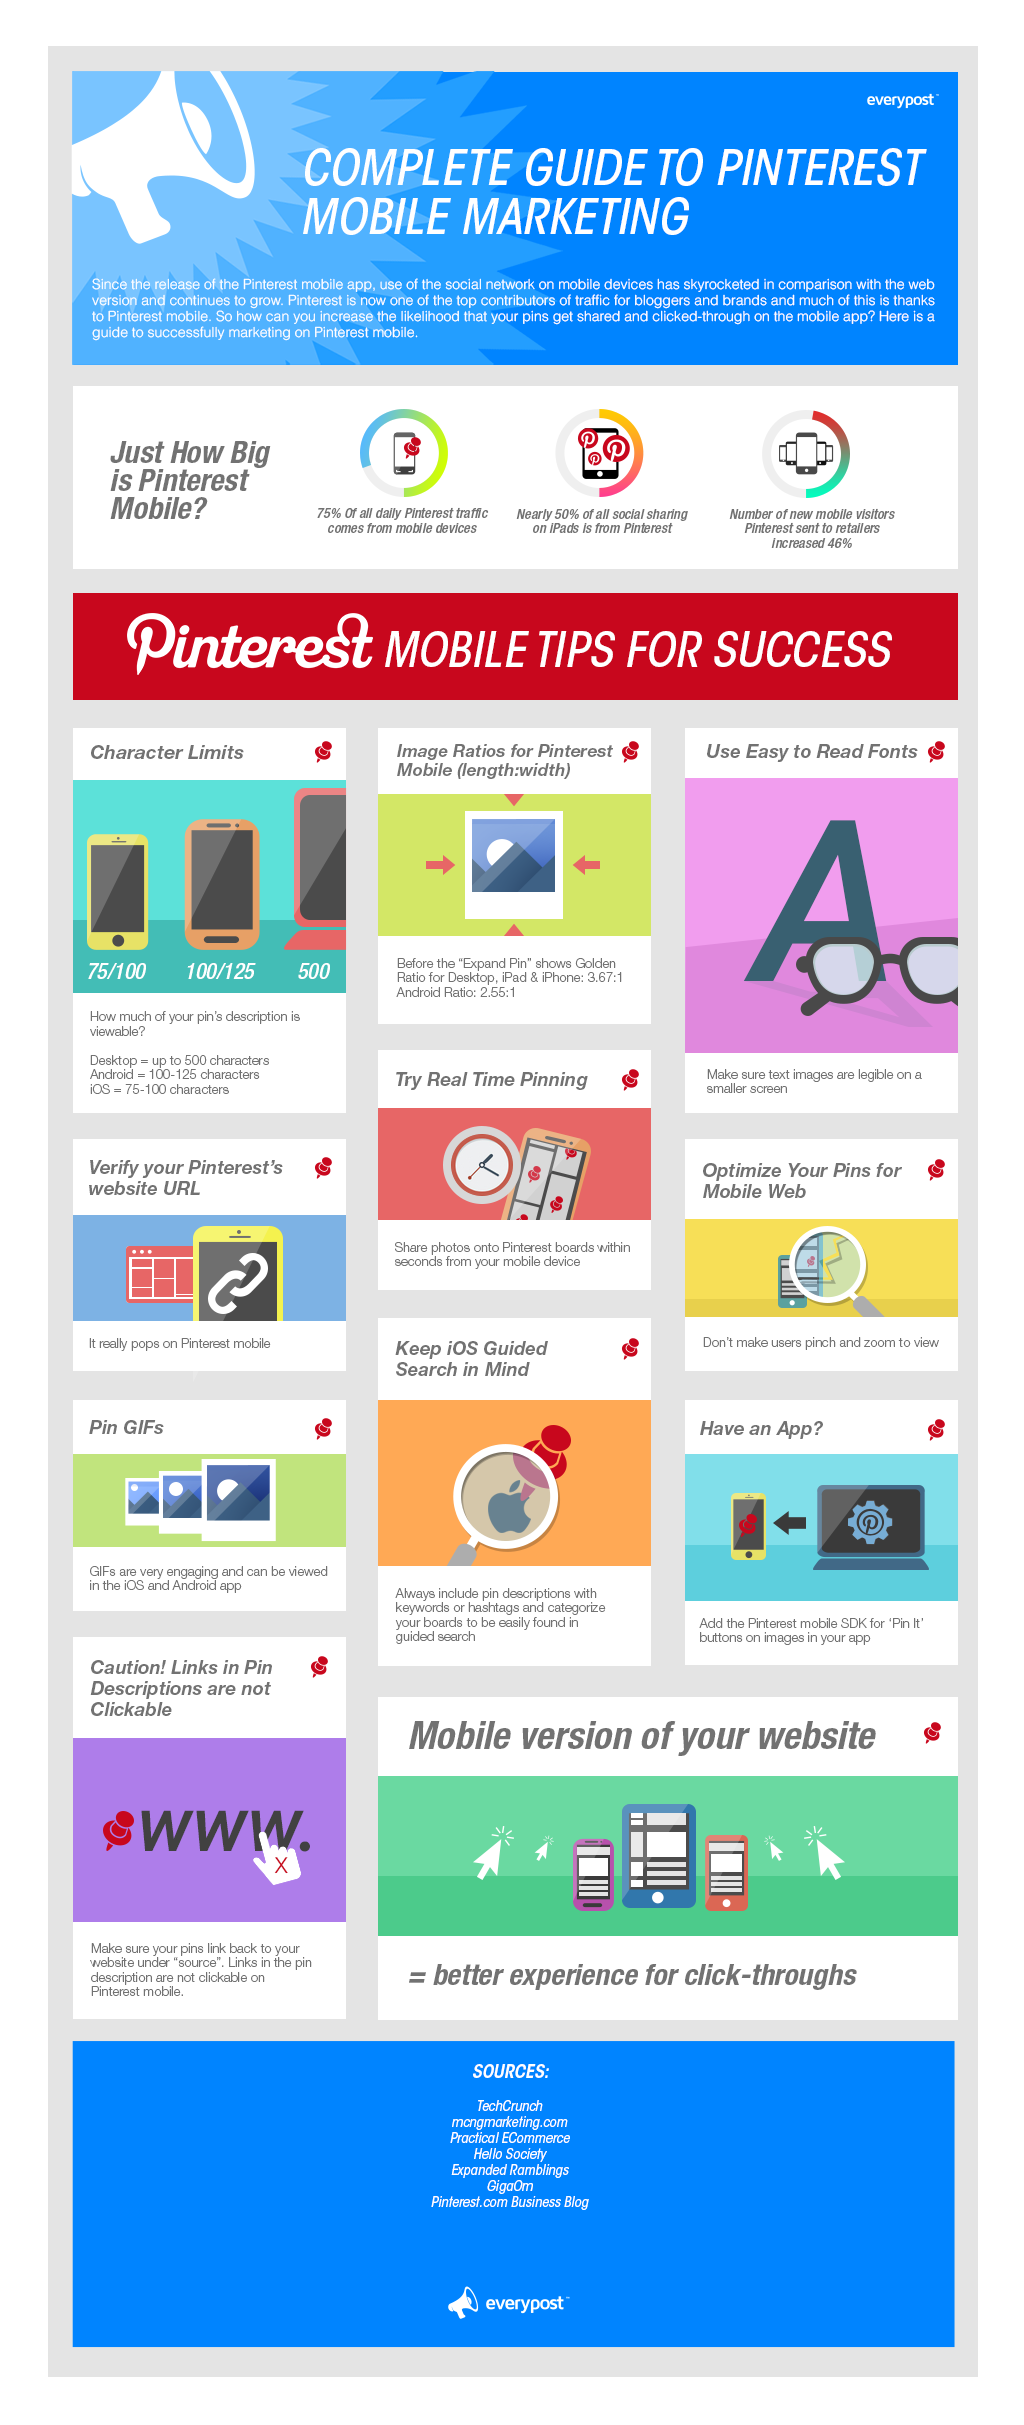 Complete Guide to Pinterest Mobile Marketing #infographic